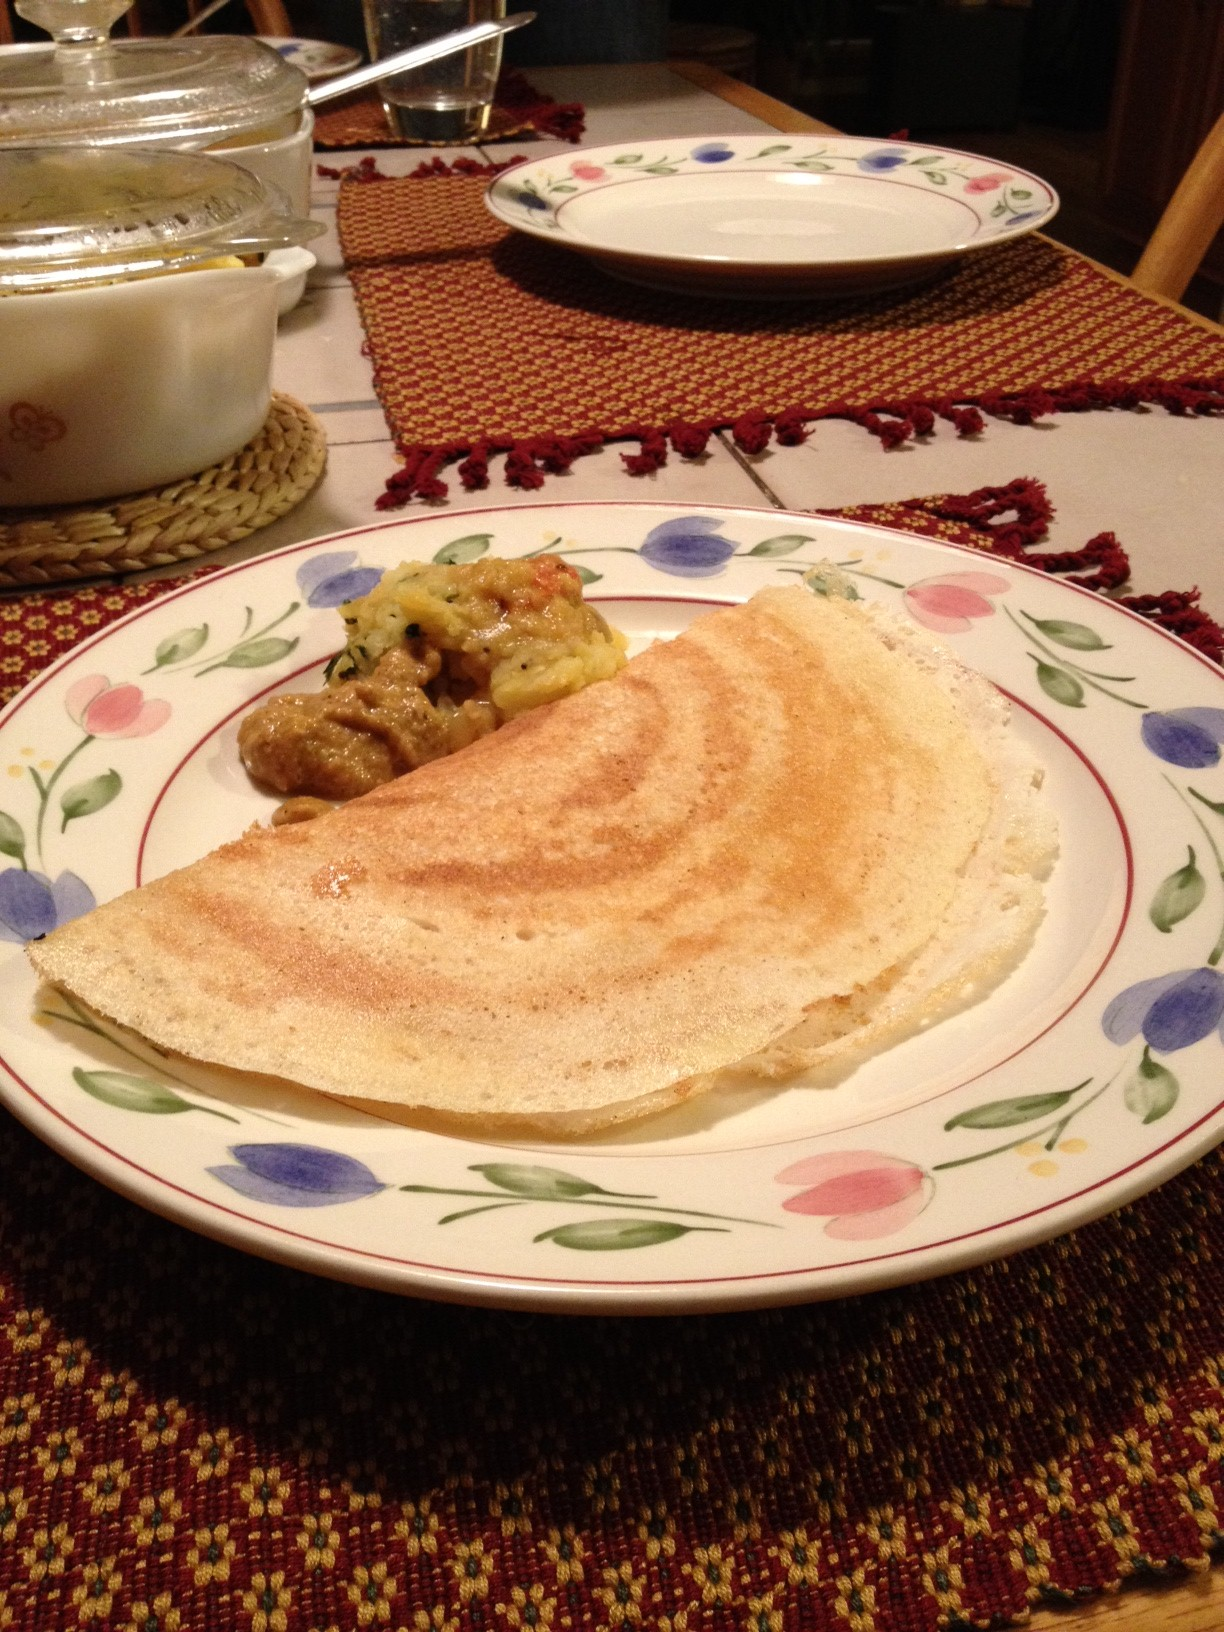 Dosas (from scratch!): Fermented Lentil and Rice Crepes